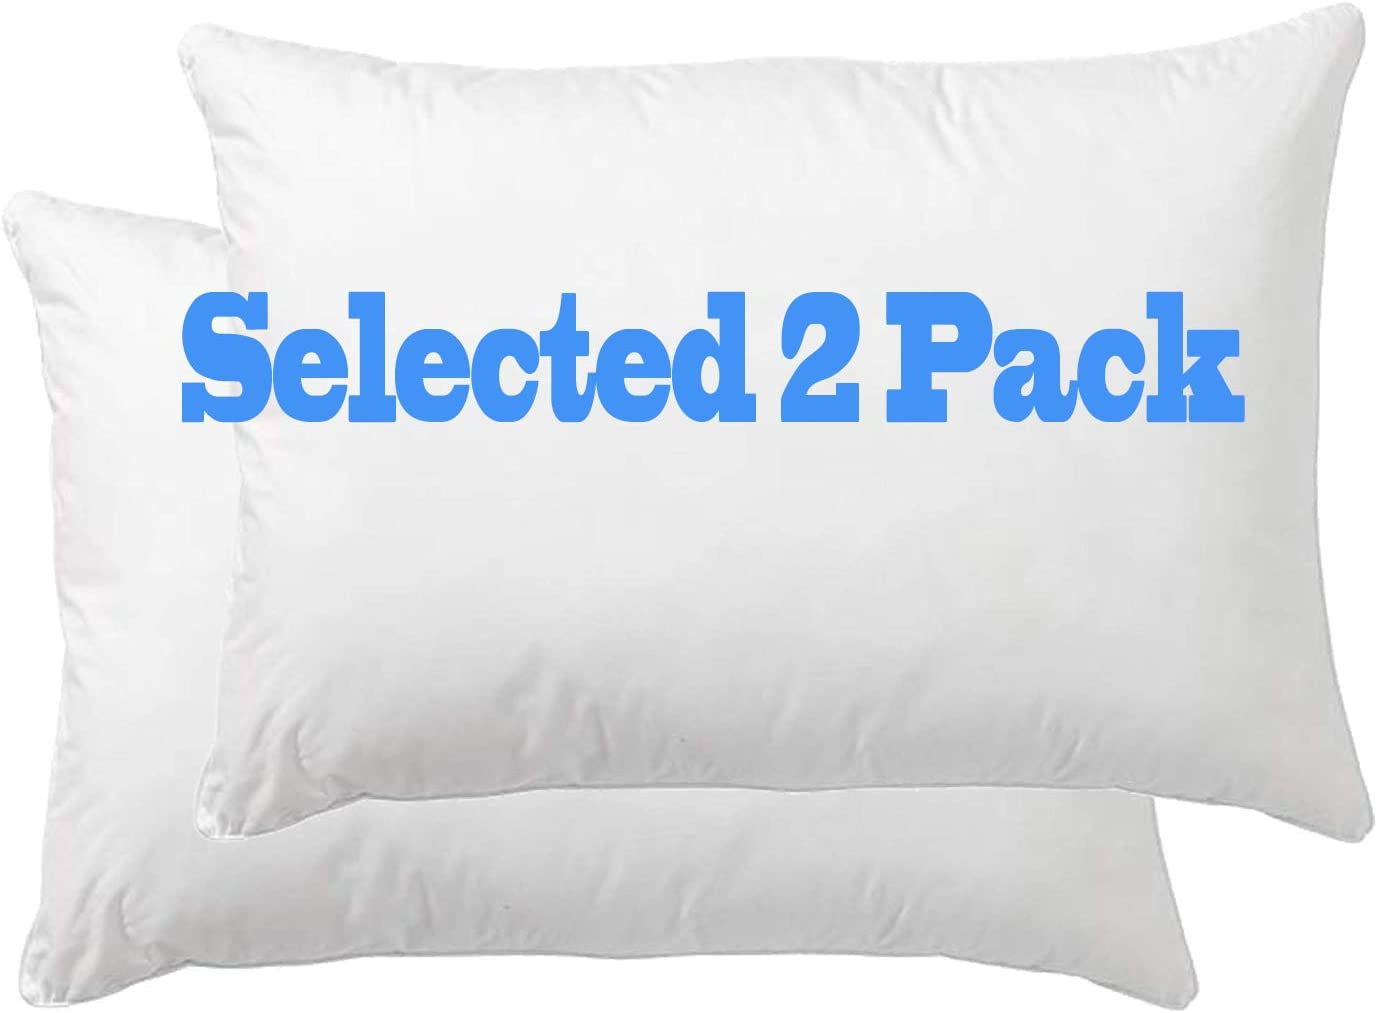 Amazon Com Danmitex Oblong Throw Pillow Insert Decorative Pillow Stuffer Down And Feather Filled Cotton Fabric White 12x20 Set Of 2 Suitable For Home Bed Lumbar Kitchen Dining